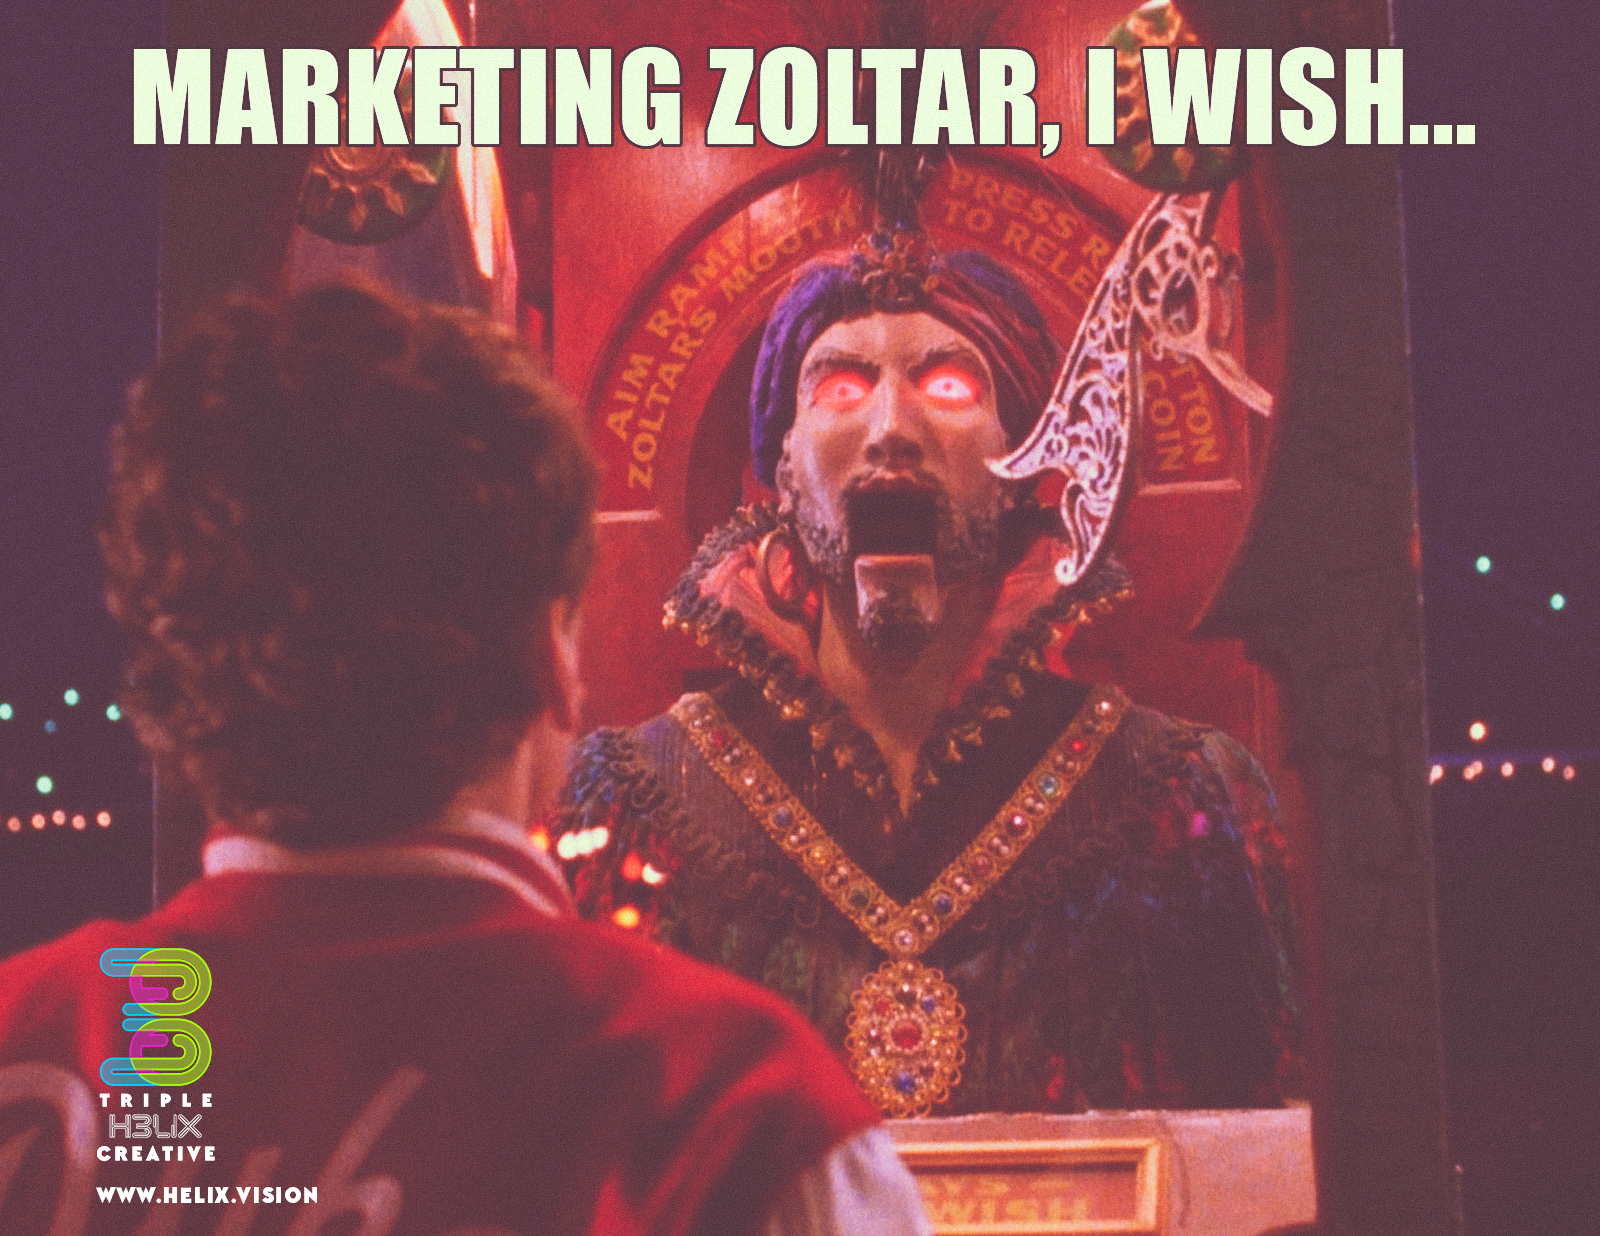 Triple Helix Creative uses a play on the Zoltar meme to share great ideas with businesses for marketing